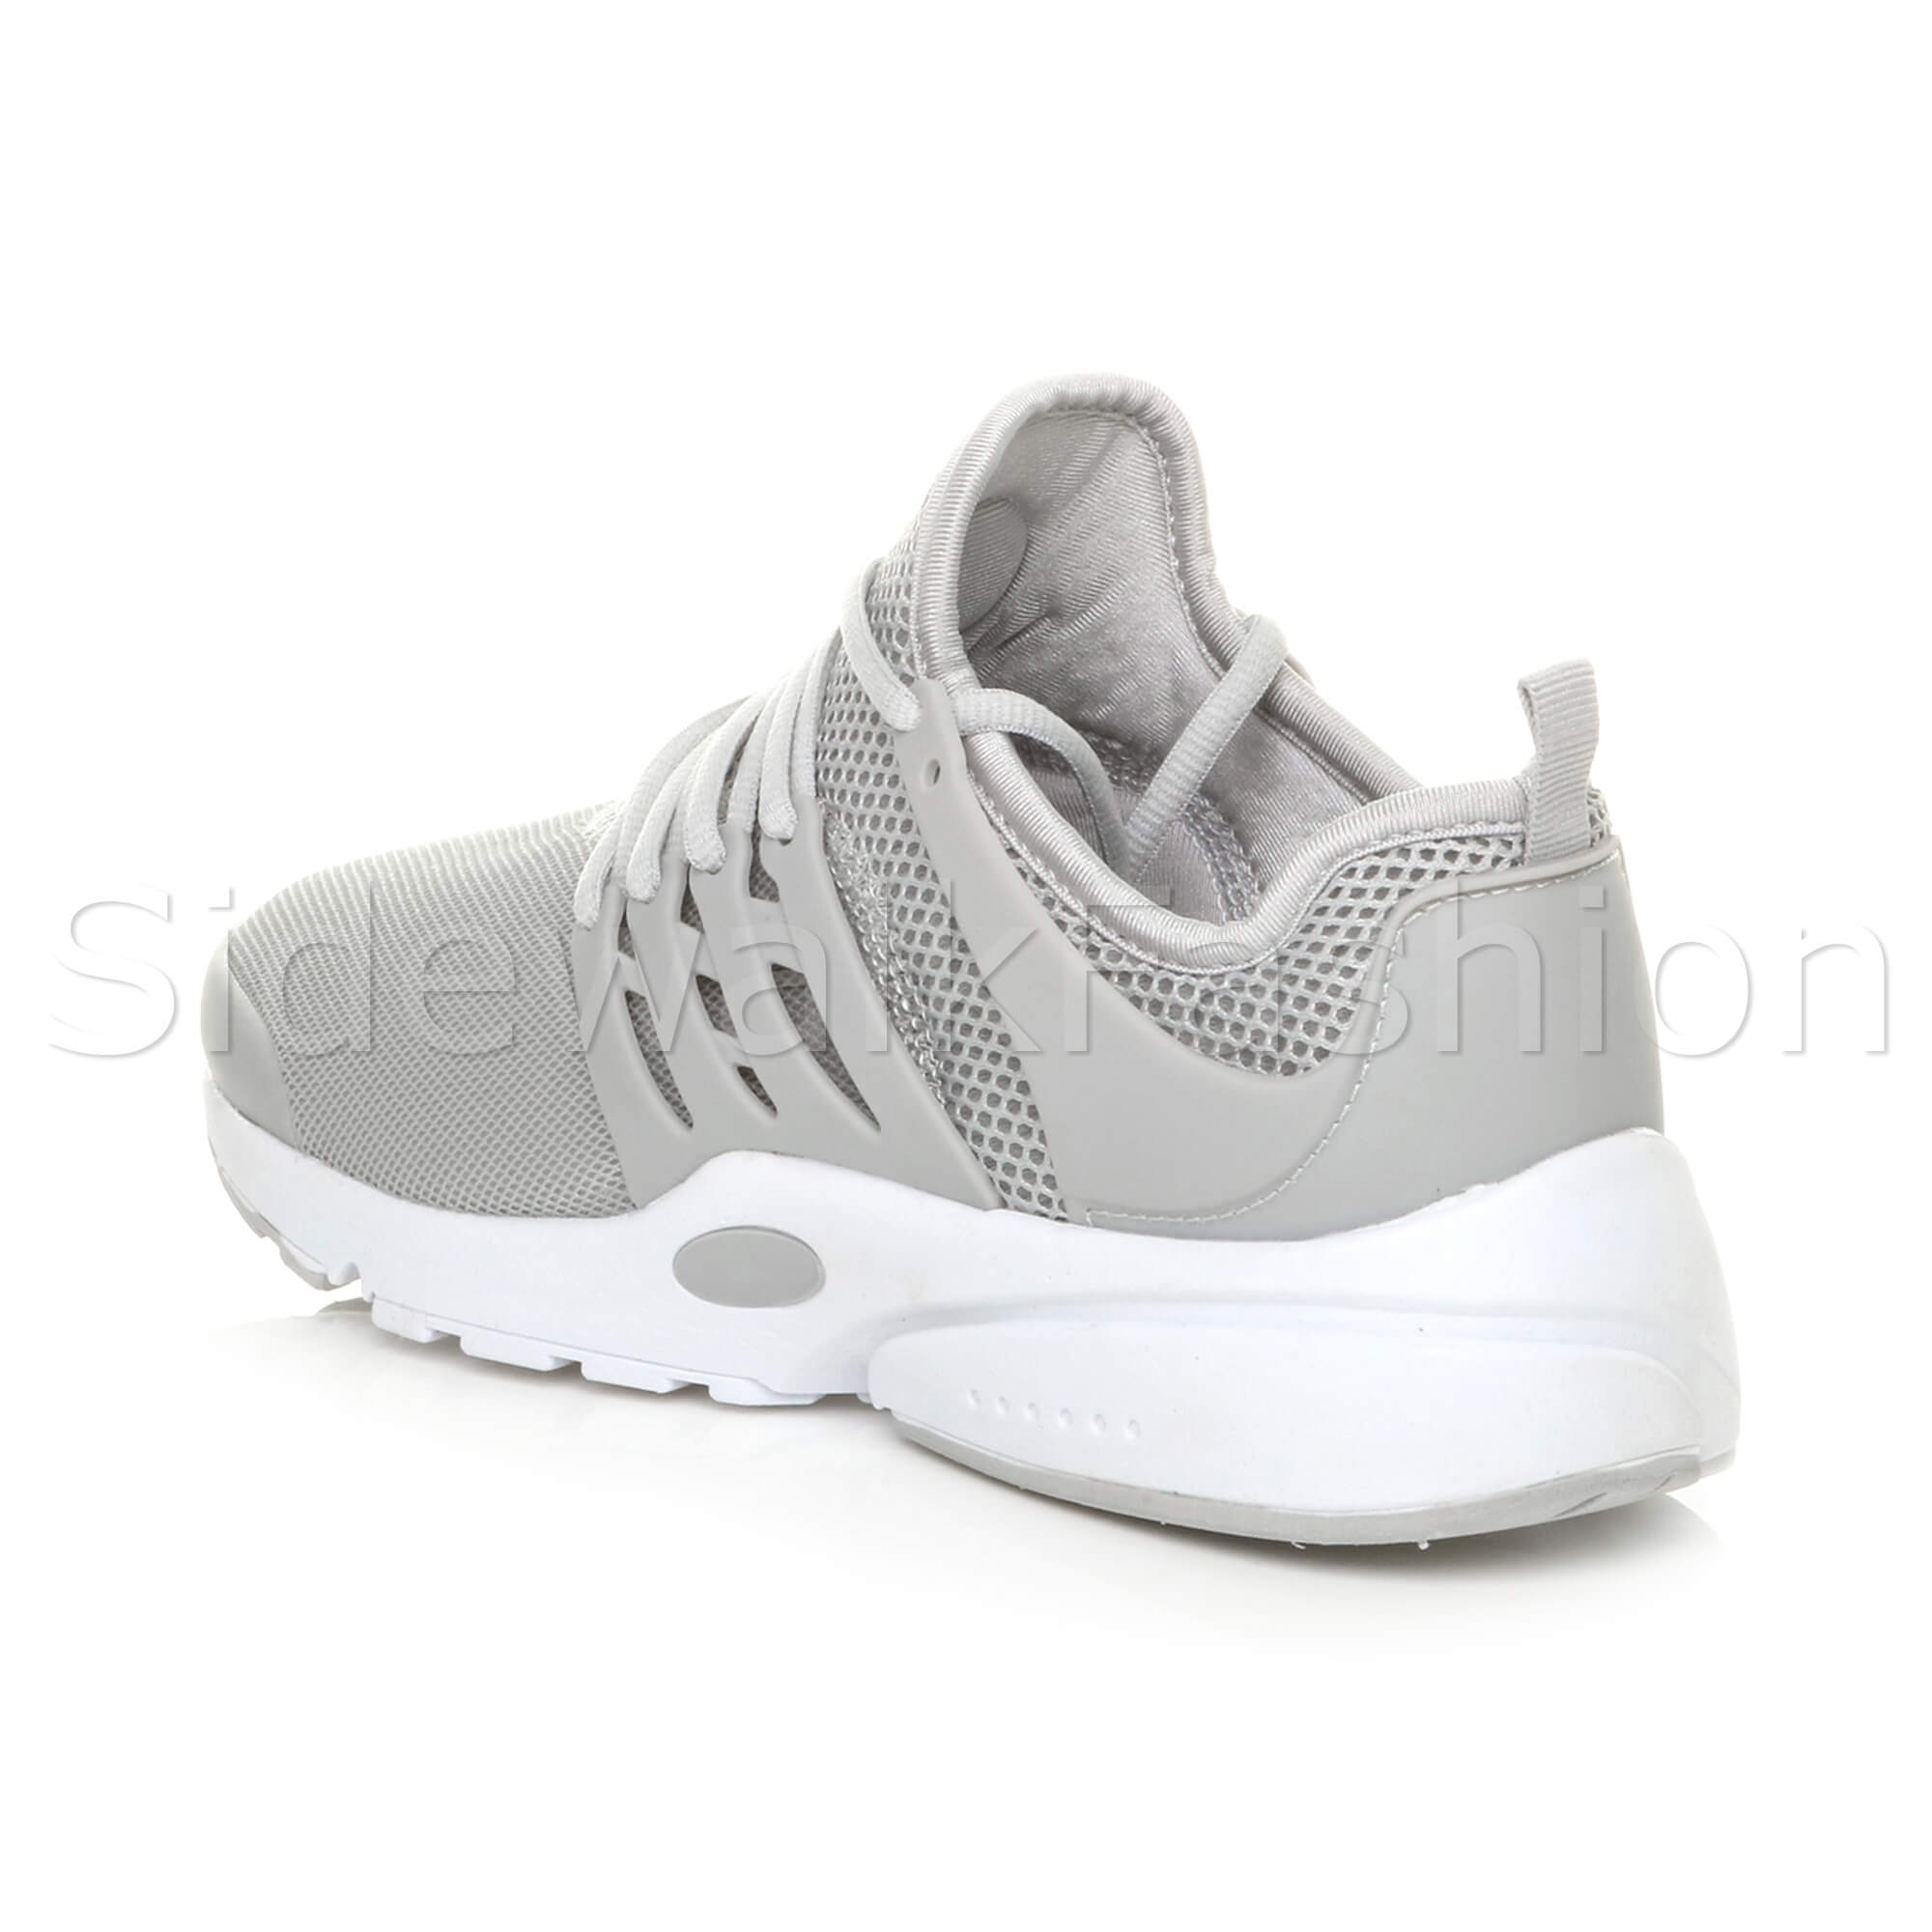 Mens-lace-up-sports-casual-low-top-gym-running-flexible-sneakers-trainers-size miniatuur 13